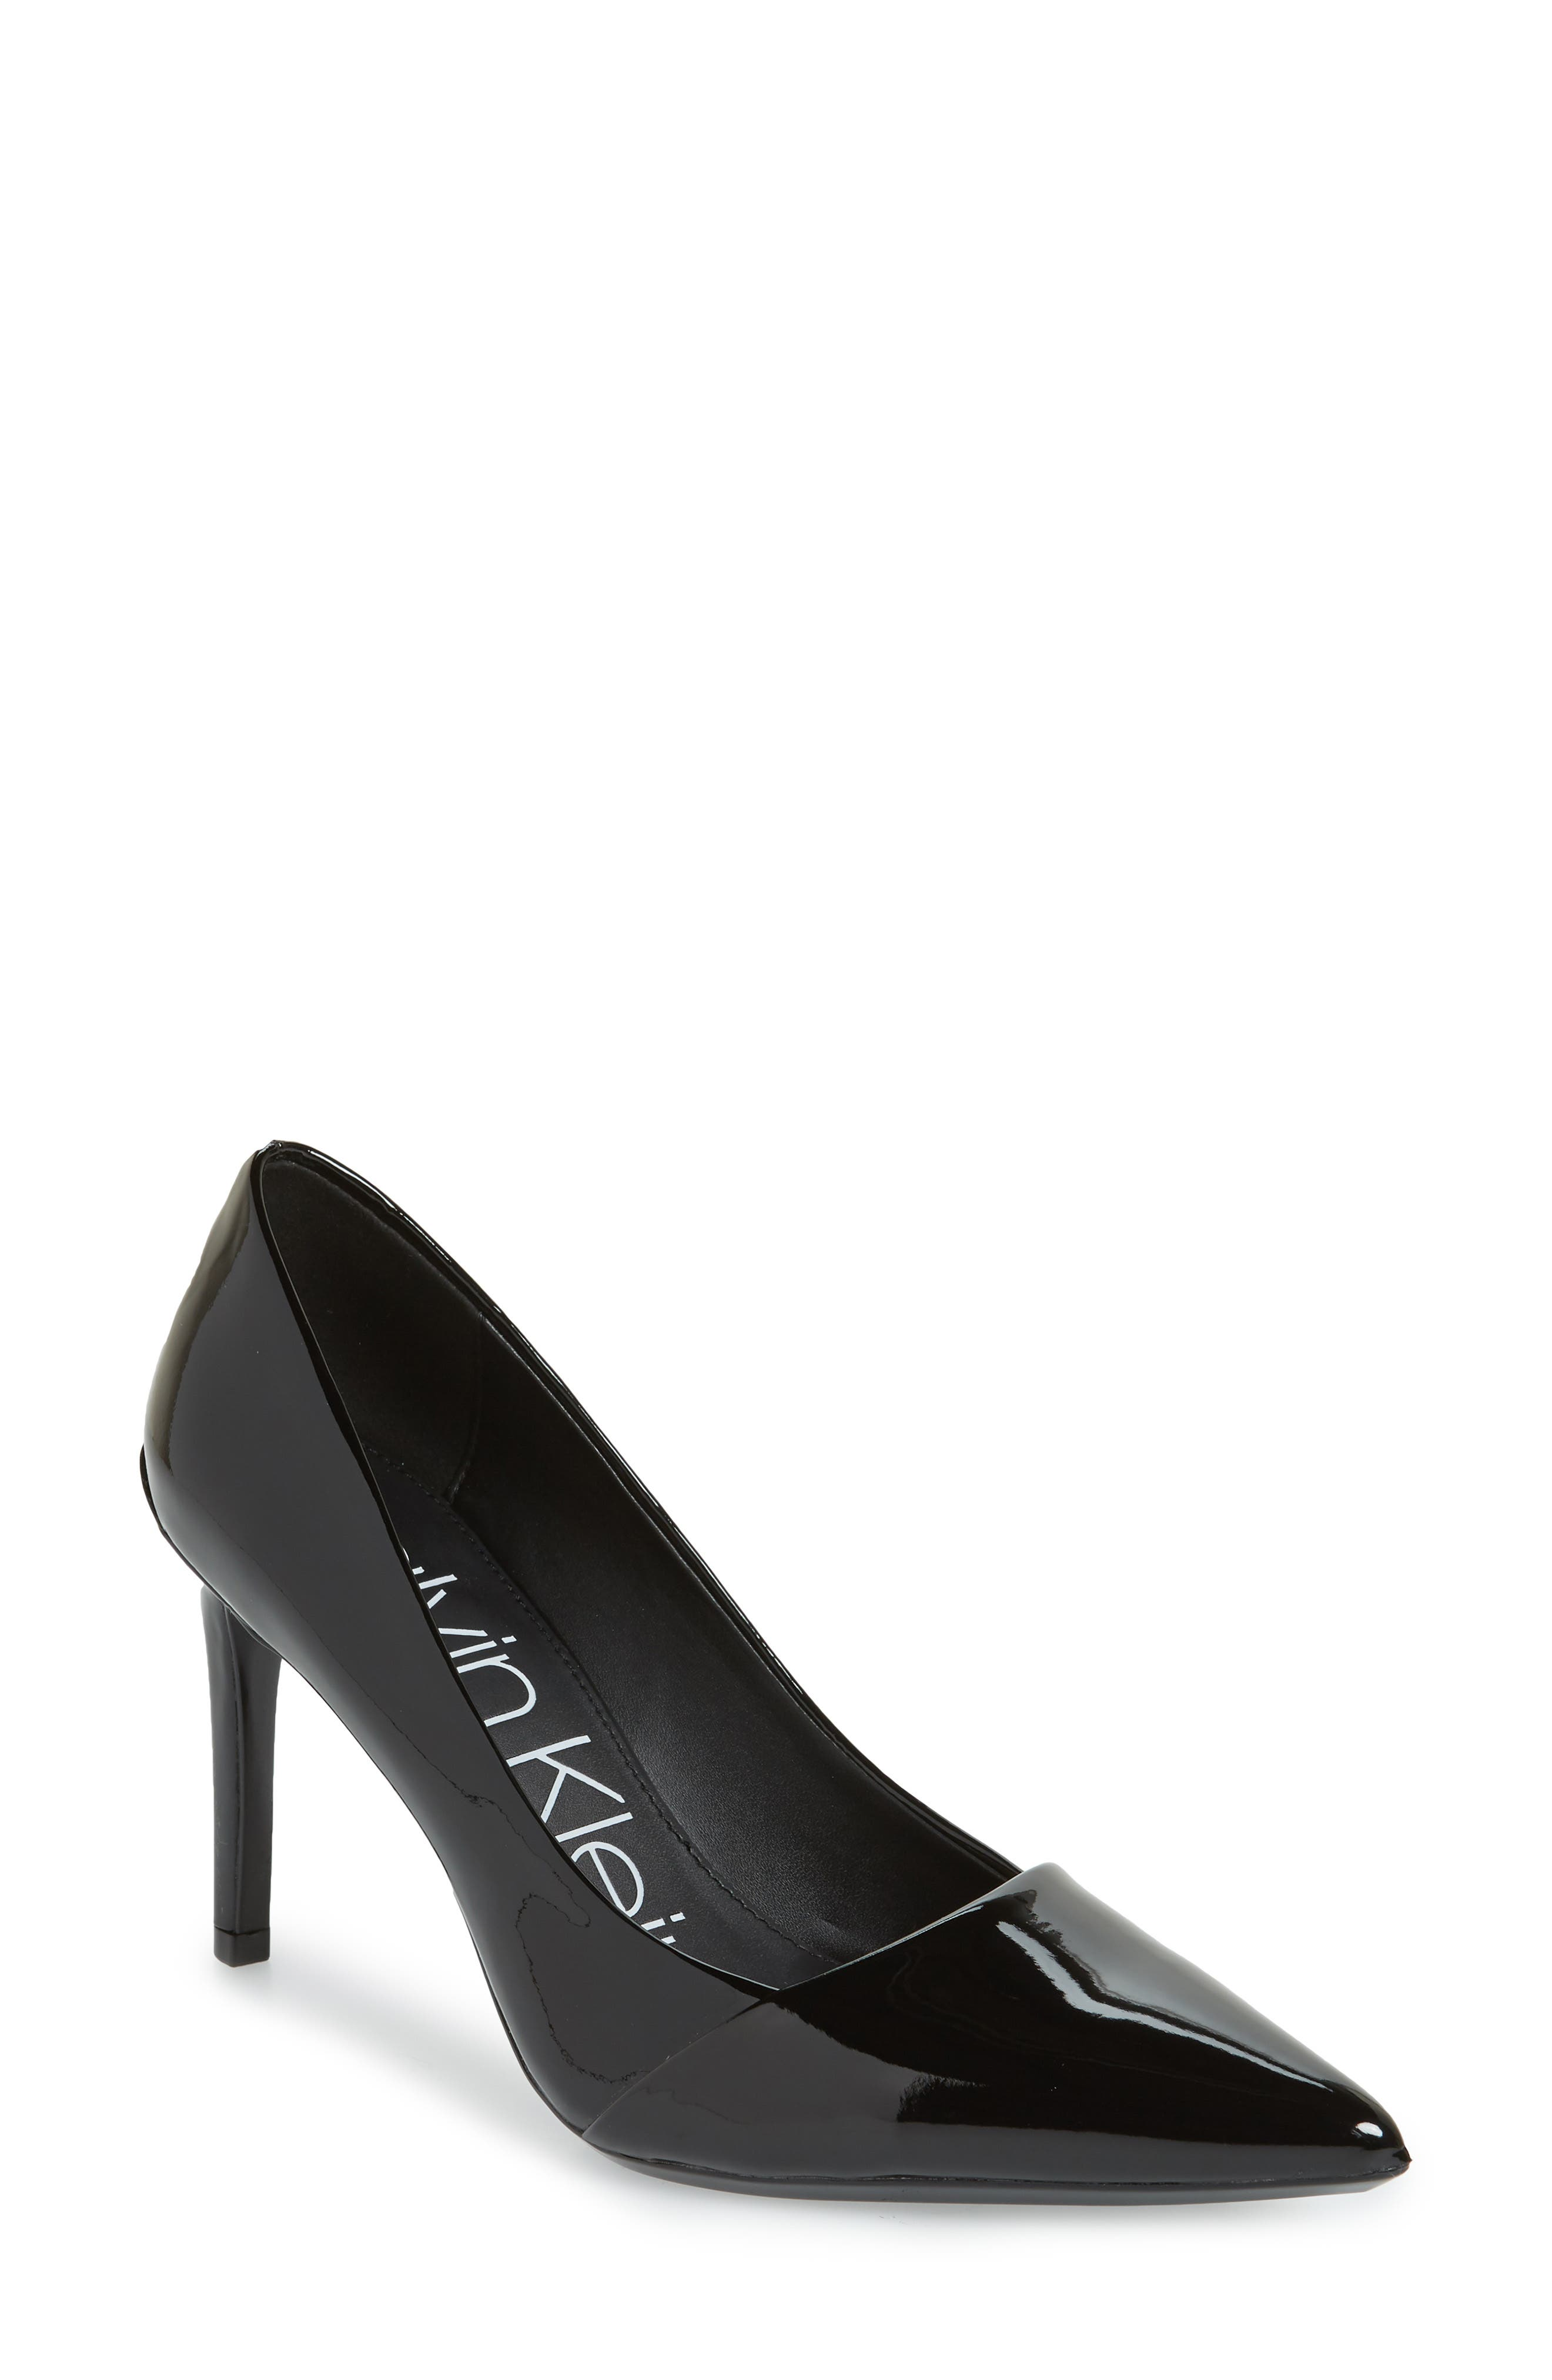 Roslyn Pointed Toe Pump,                             Main thumbnail 1, color,                             BLACK PATENT LEATHER